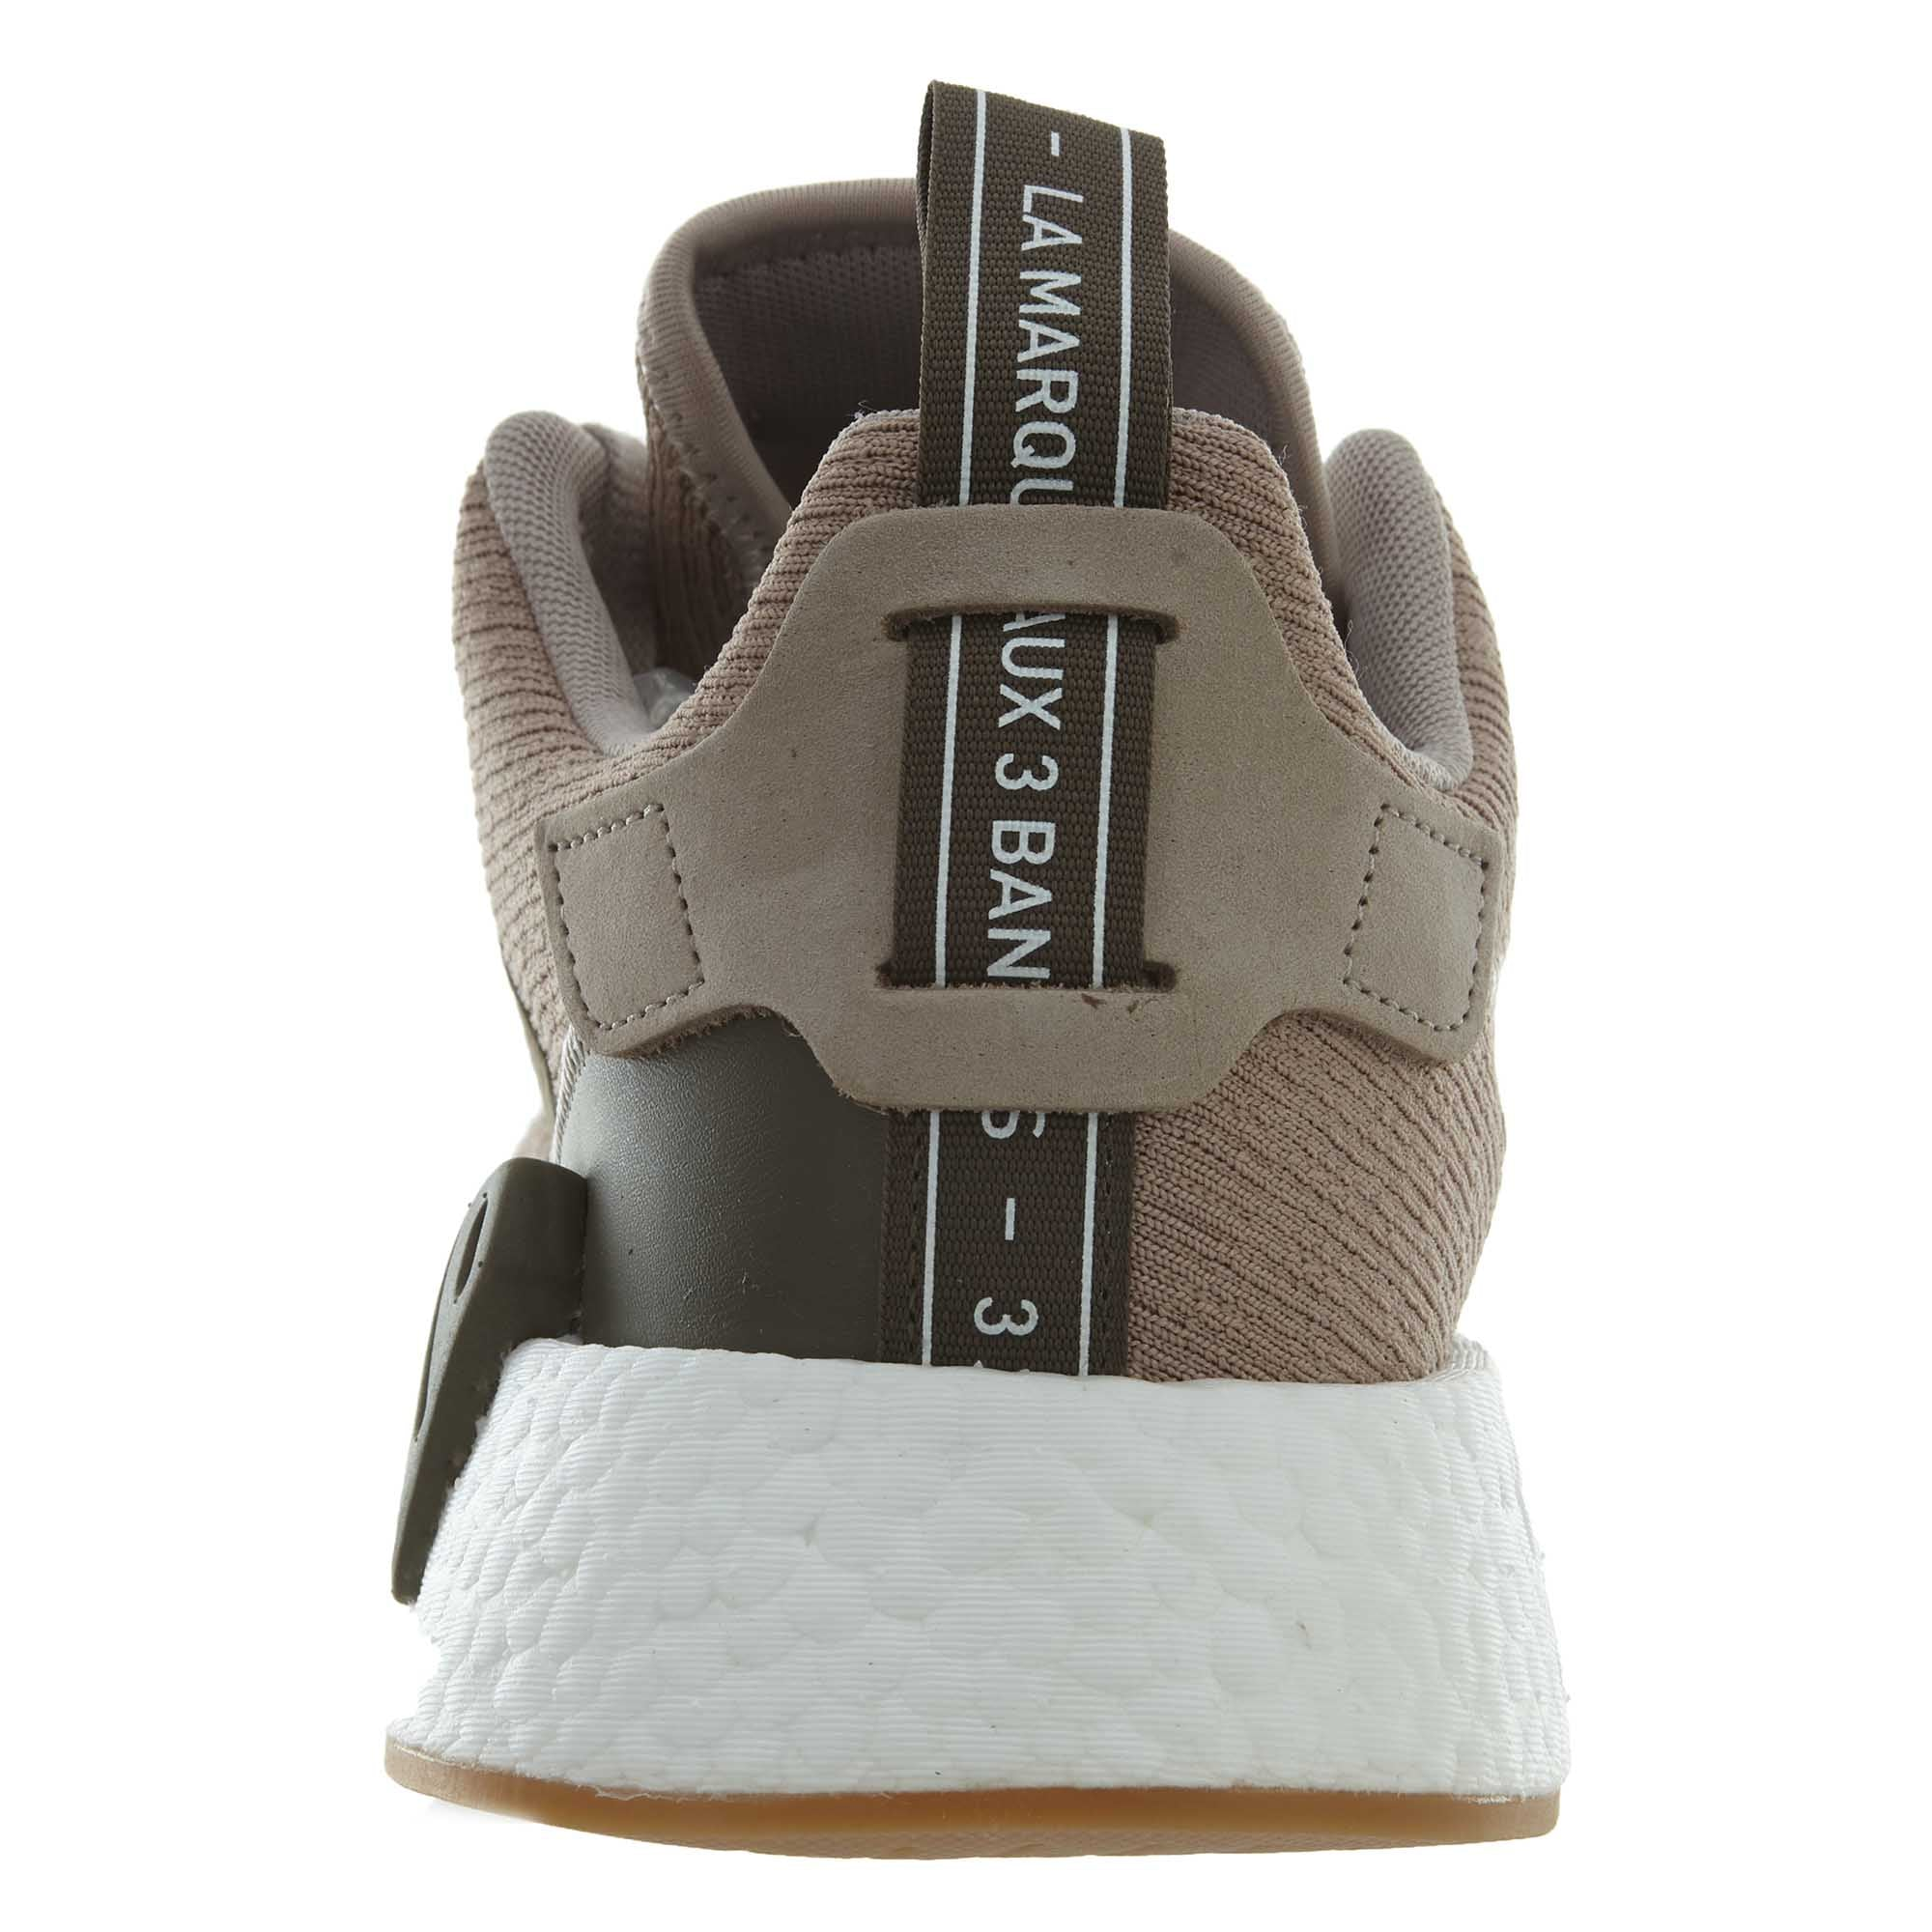 online store fa4f0 6f8b0 Adidas Nmd_r2 Mens Style : Cq2399 – Sneaker Experts